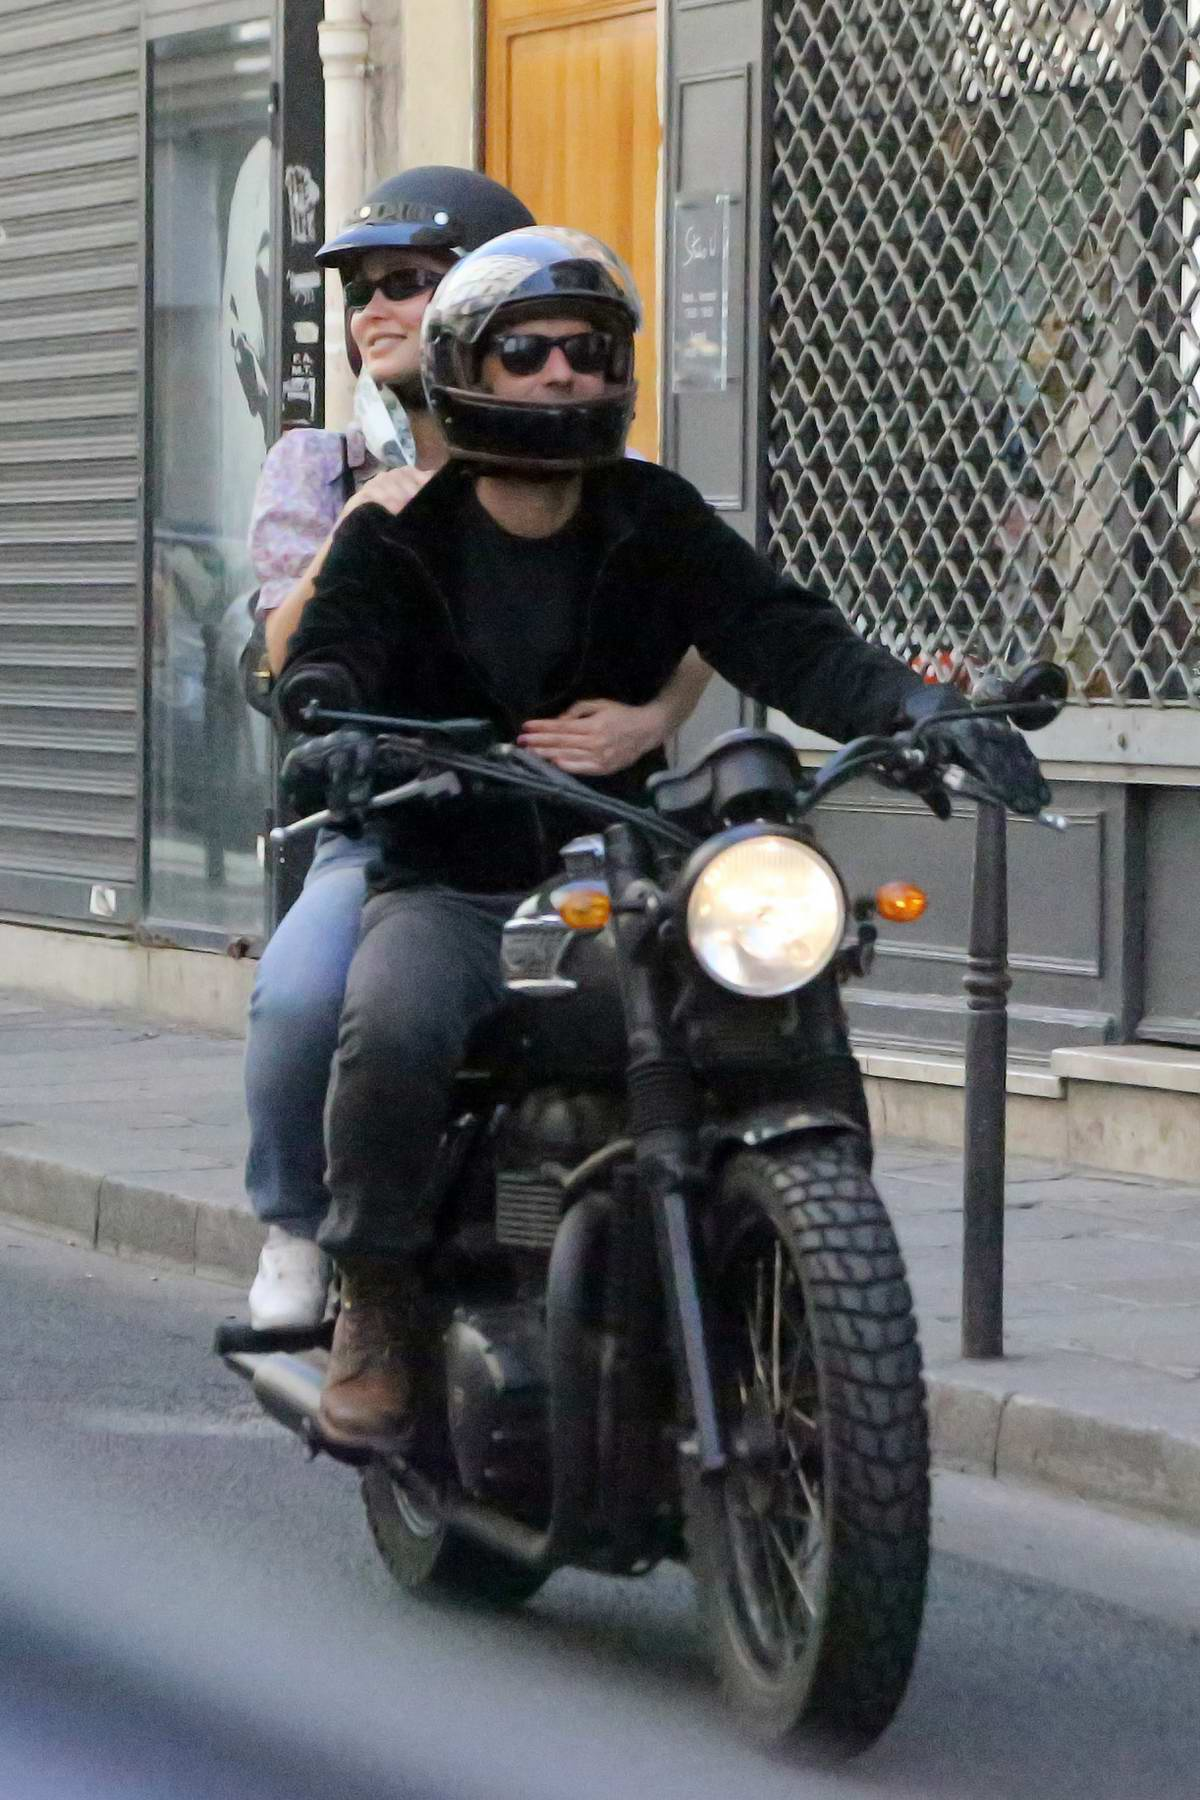 Lily-Rose Depp spotted during motorcycle ride with her stepfather Samuel Benchetrit in Paris, France